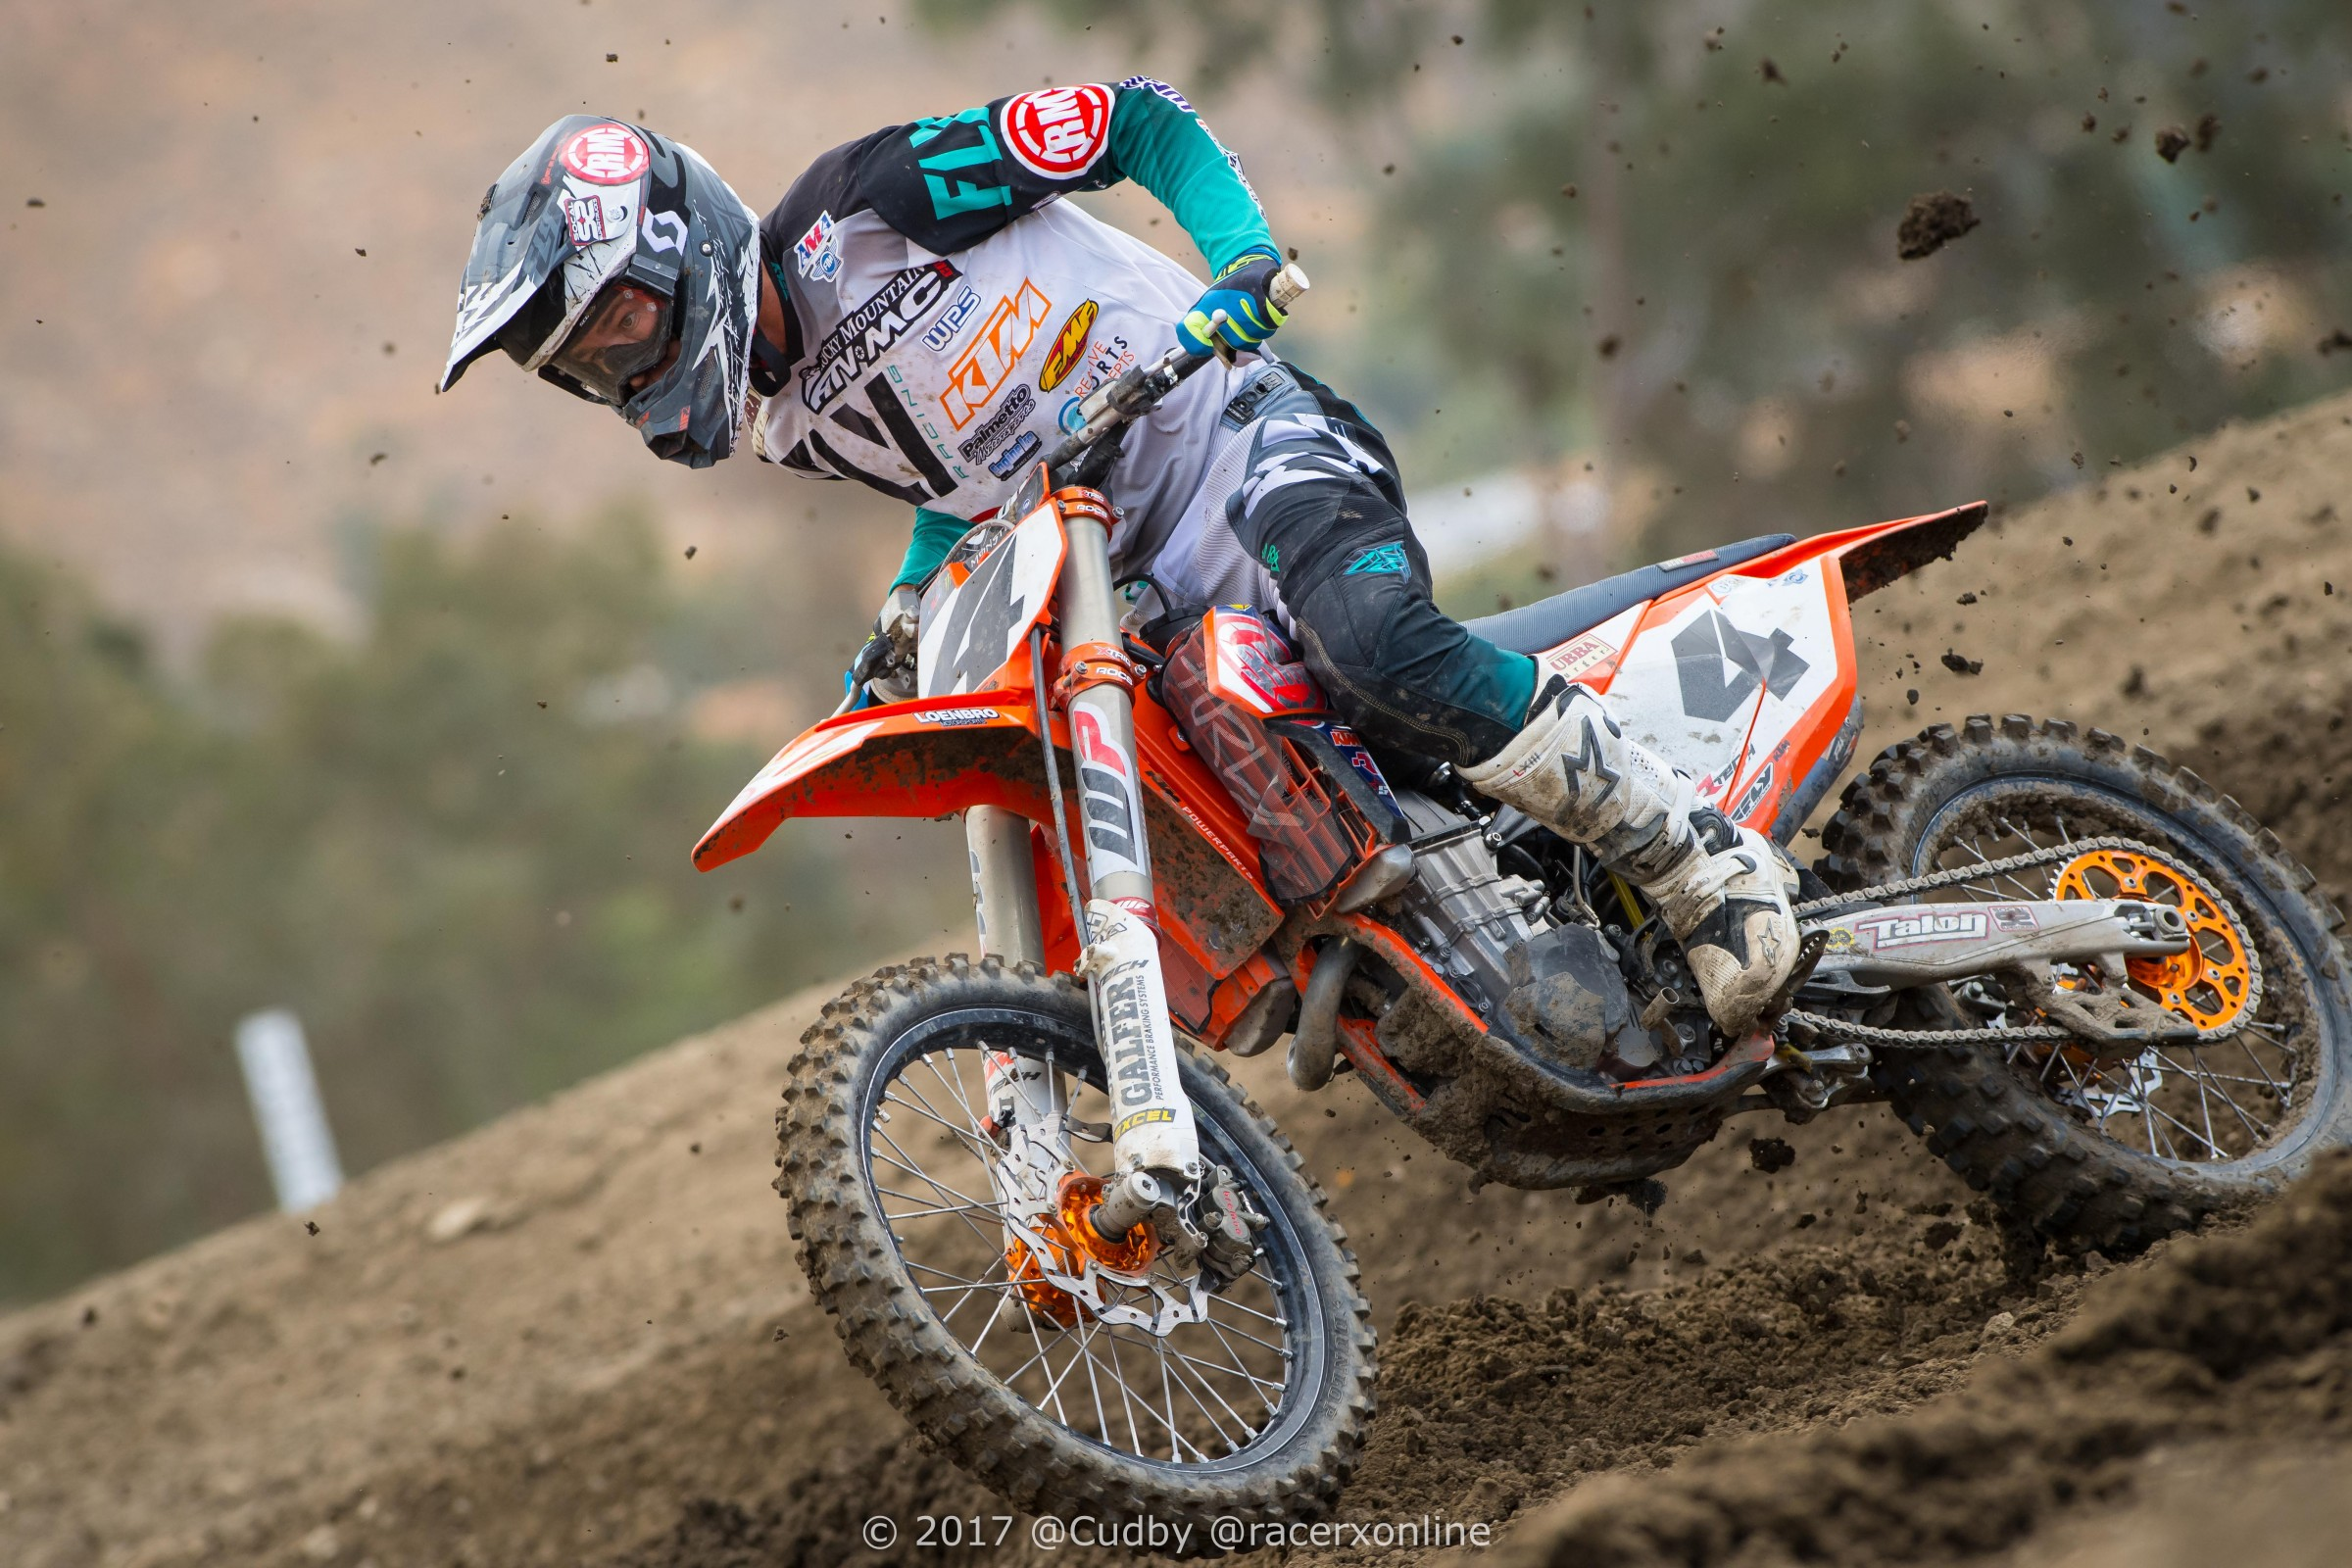 Baggett started out great at Hangtown last year, passing Tomac and finishing third in the first moto